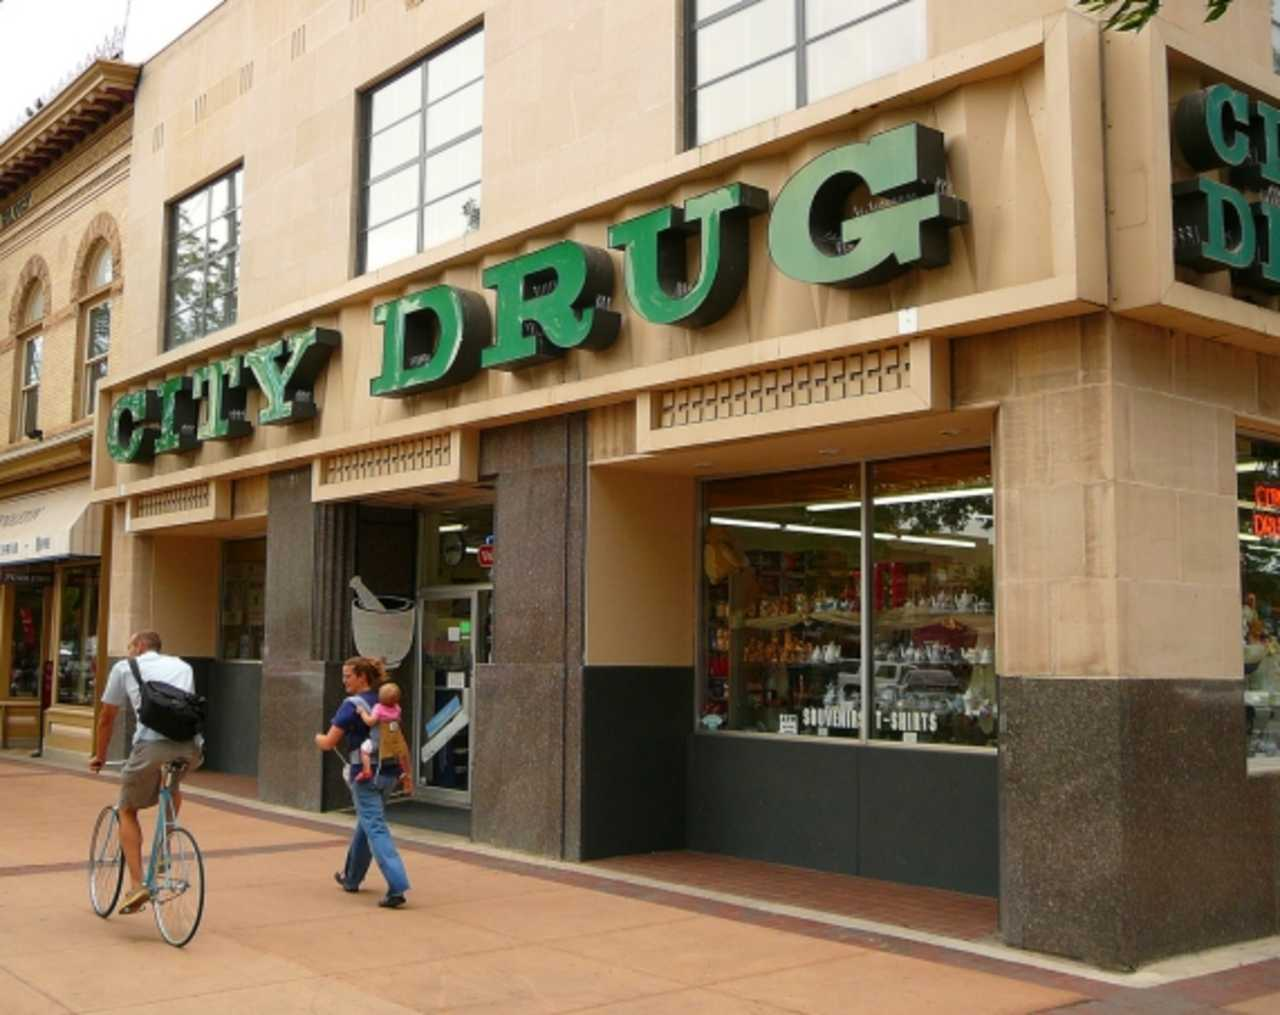 City Drug - Medical - Pharmacies in Ft Collins CO